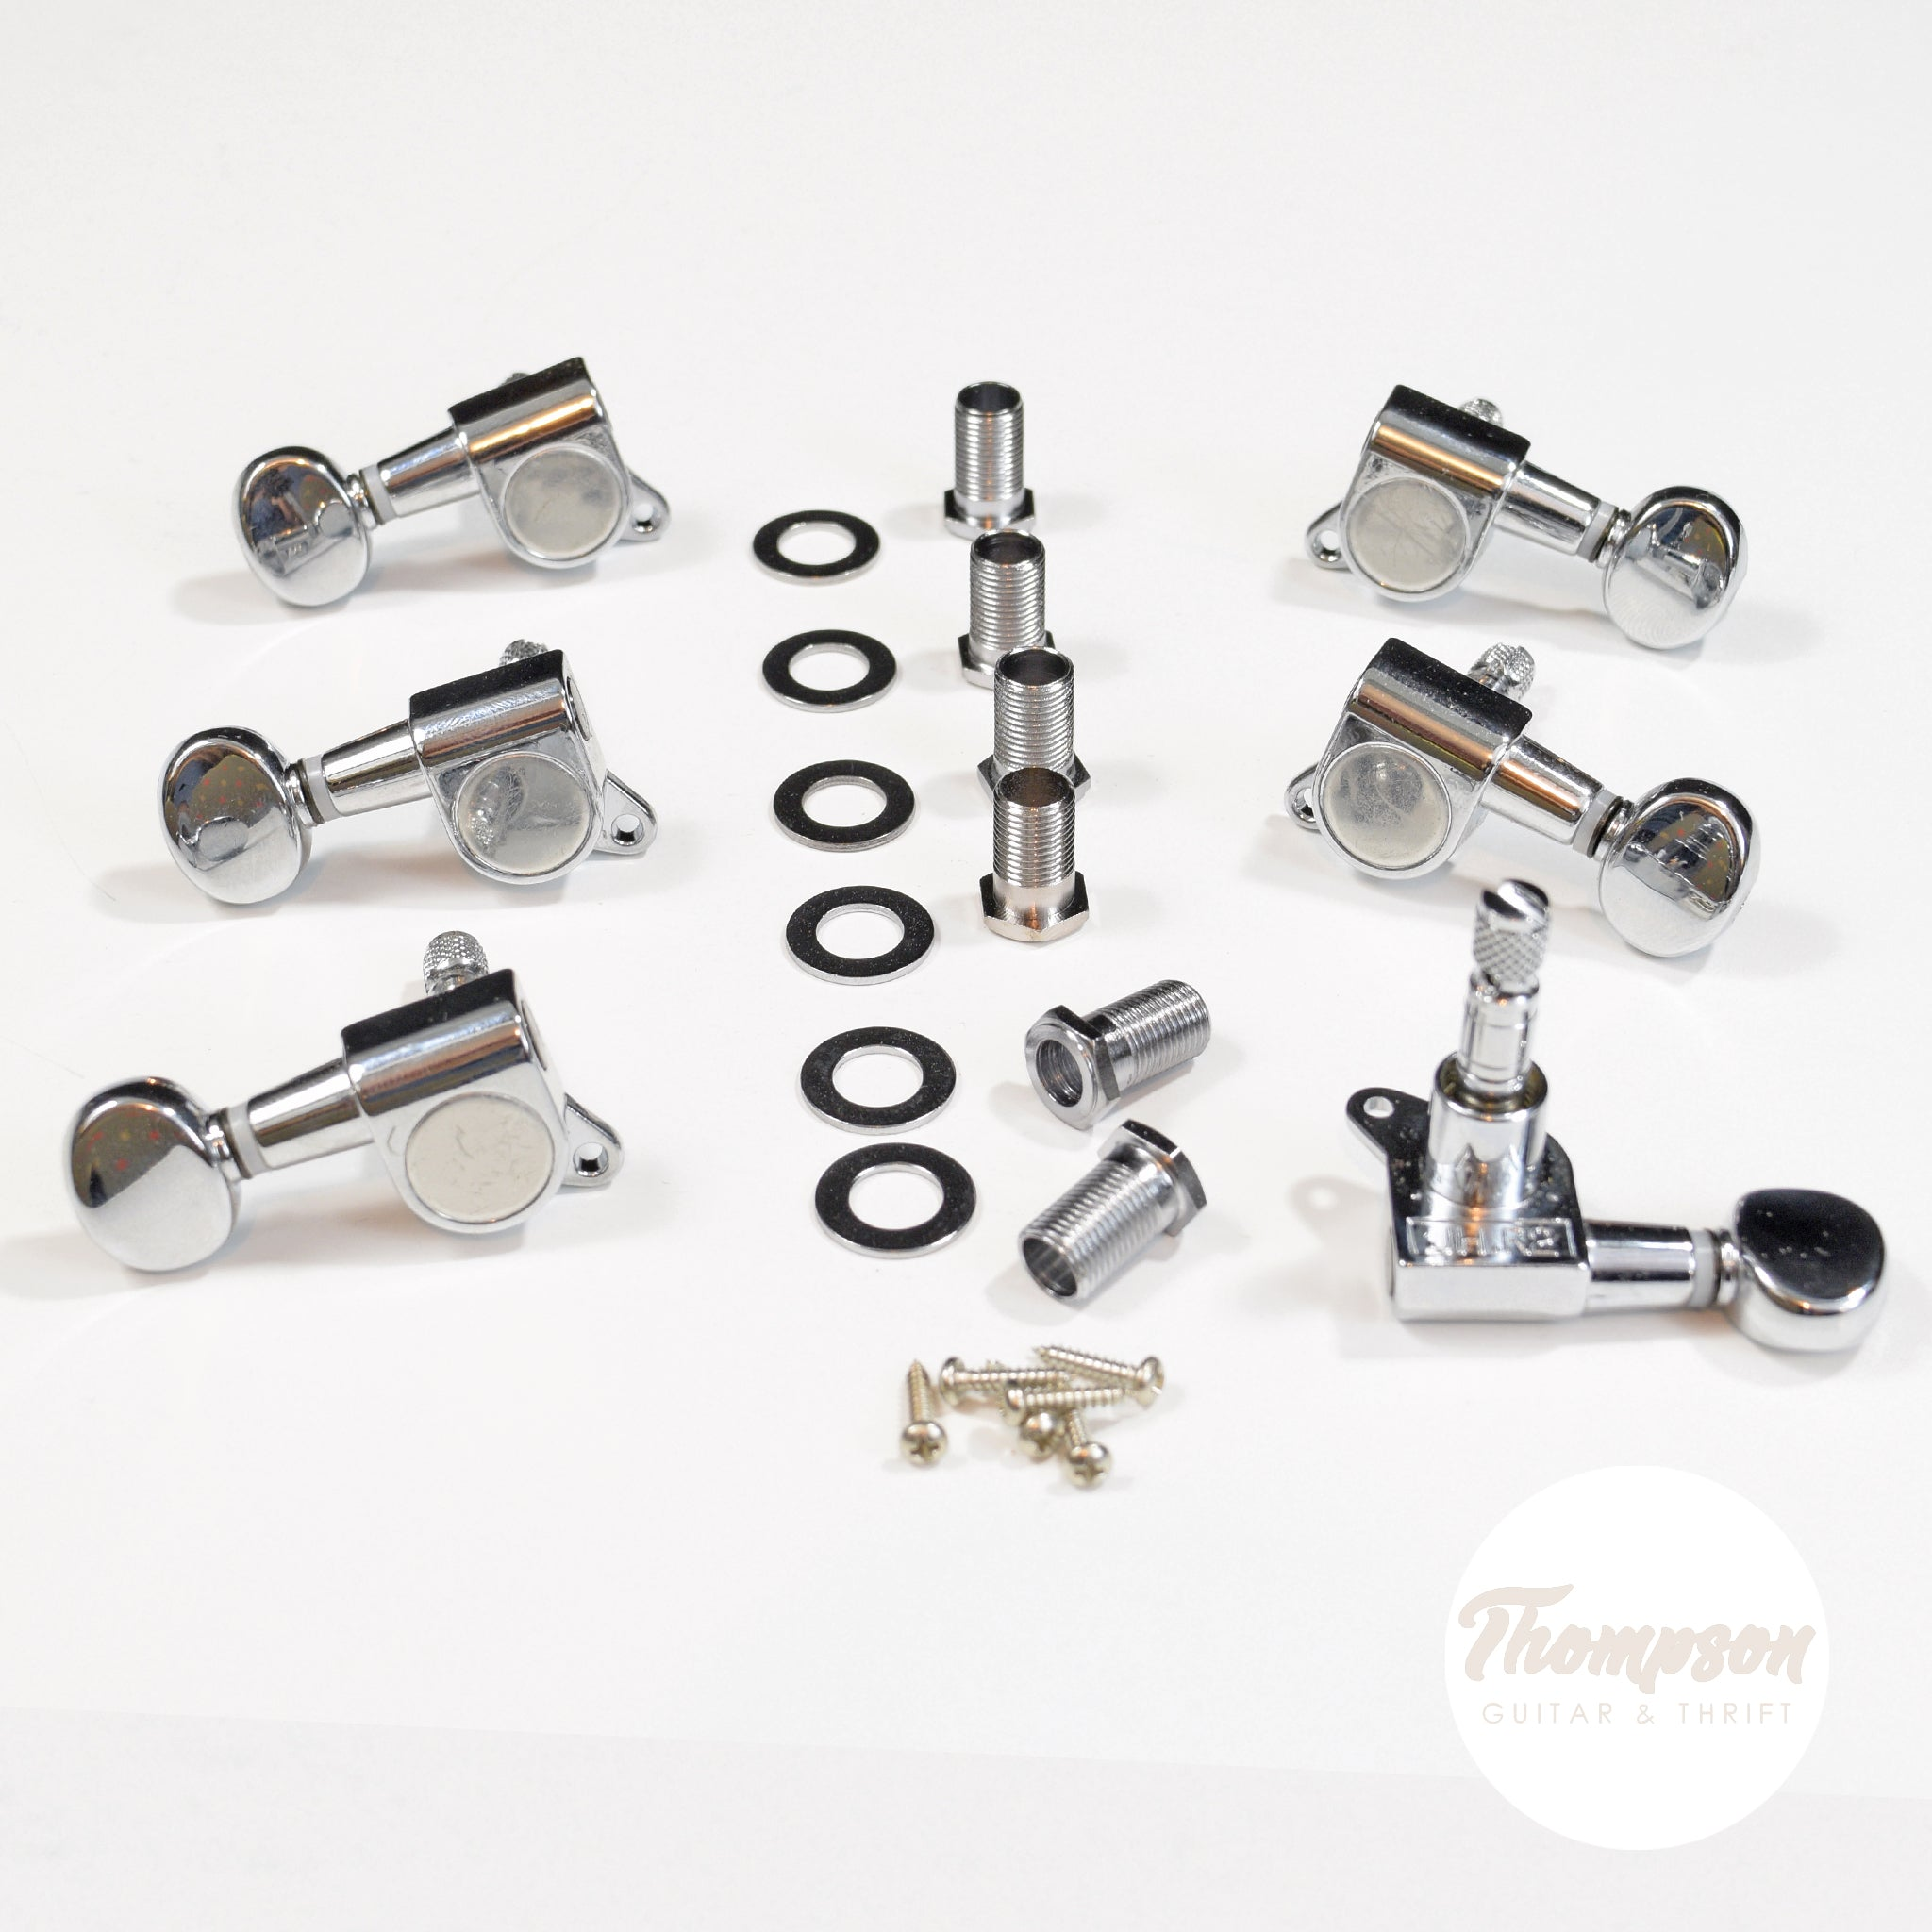 3x3 Chrome Proline Self Locking Tuners Set of 6